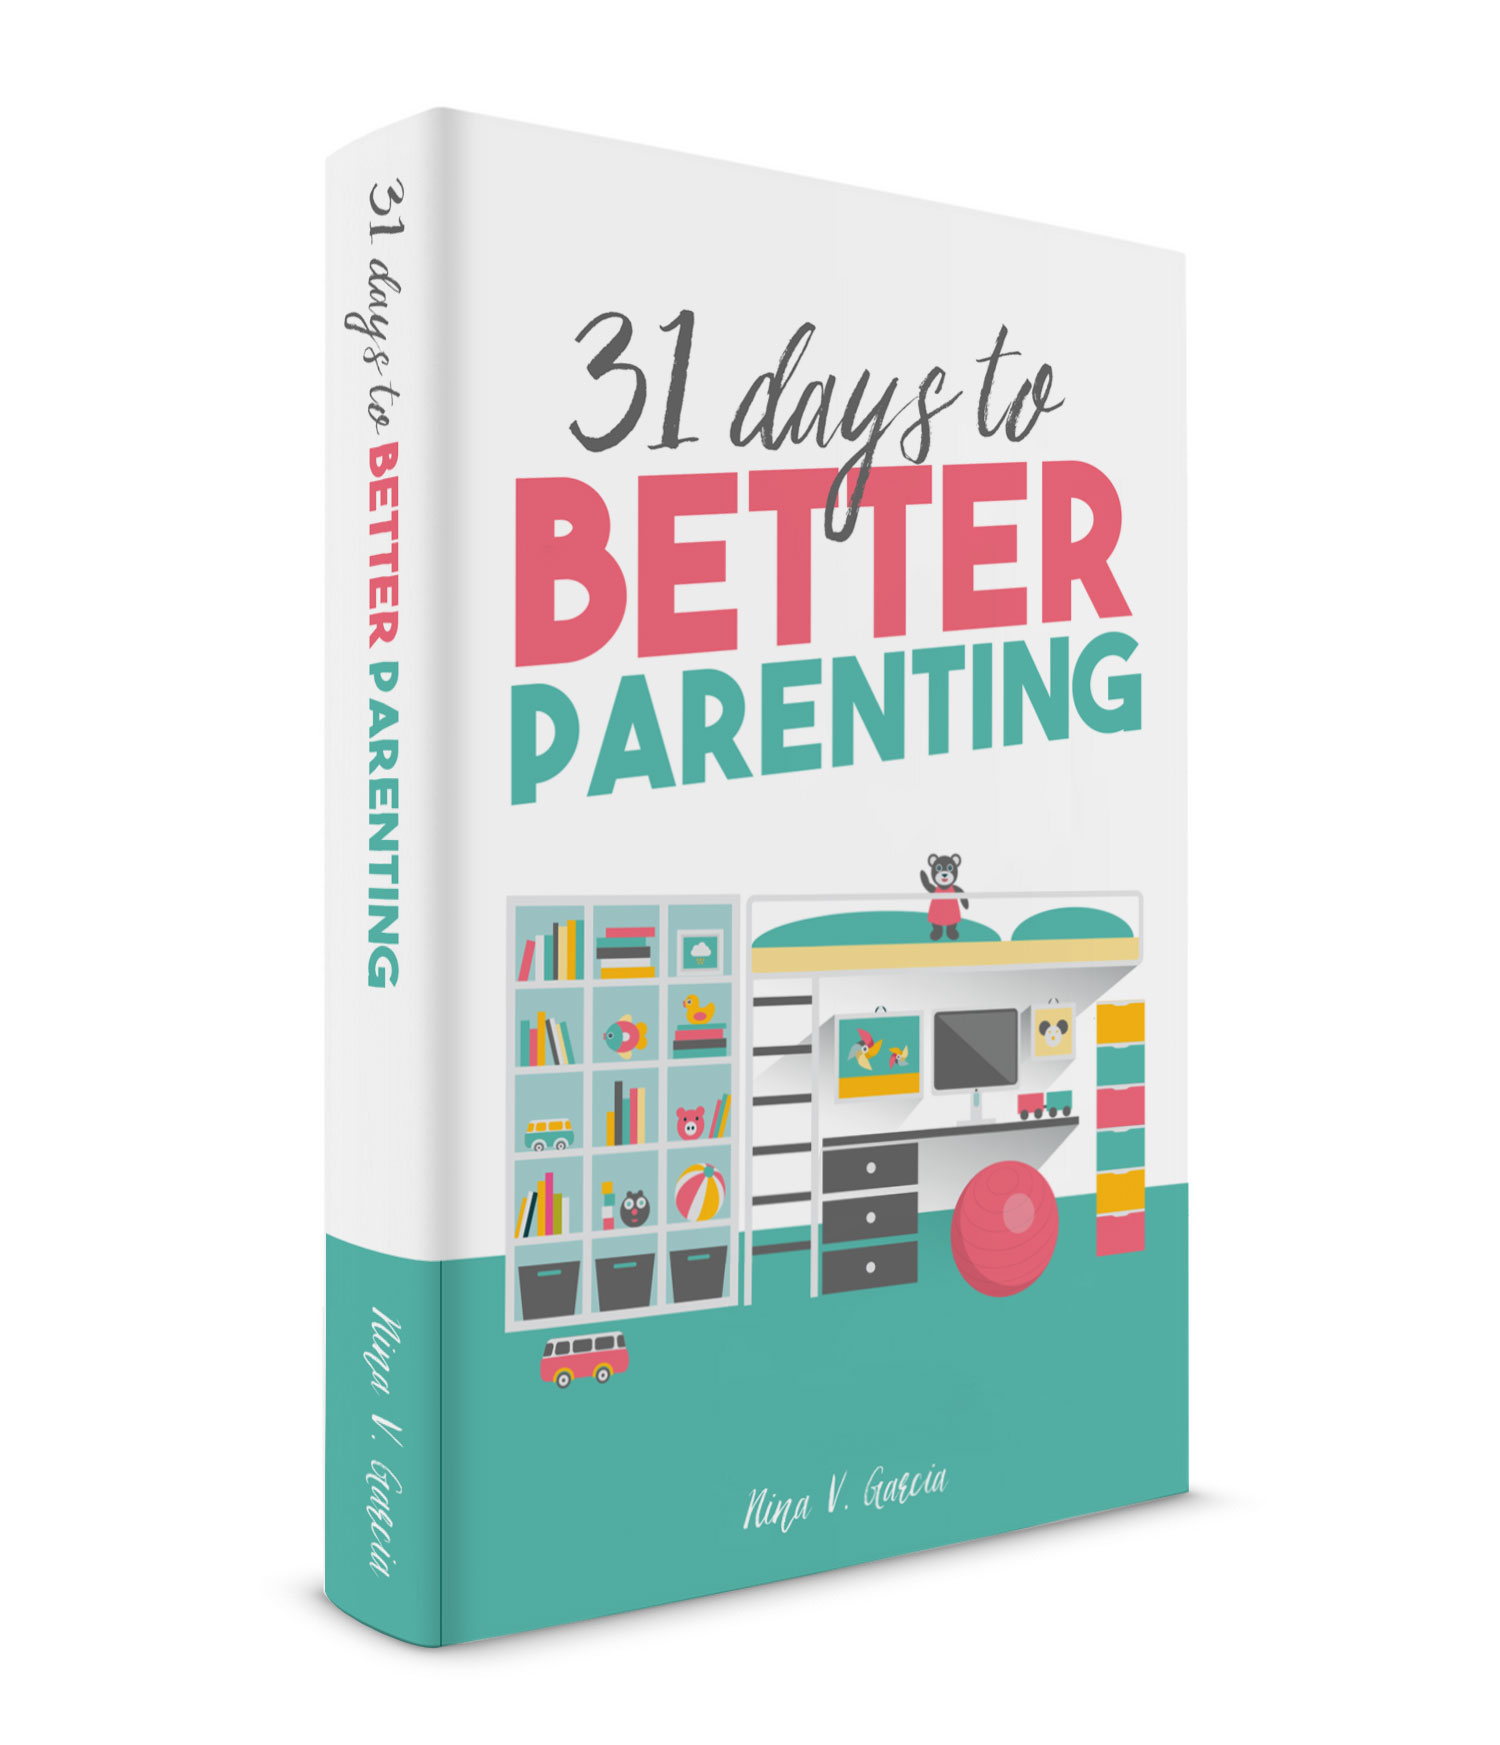 Dealing with difficult behavior? 31 Days to Better Parenting will help you handle power struggles and build a strong relationship with your child!